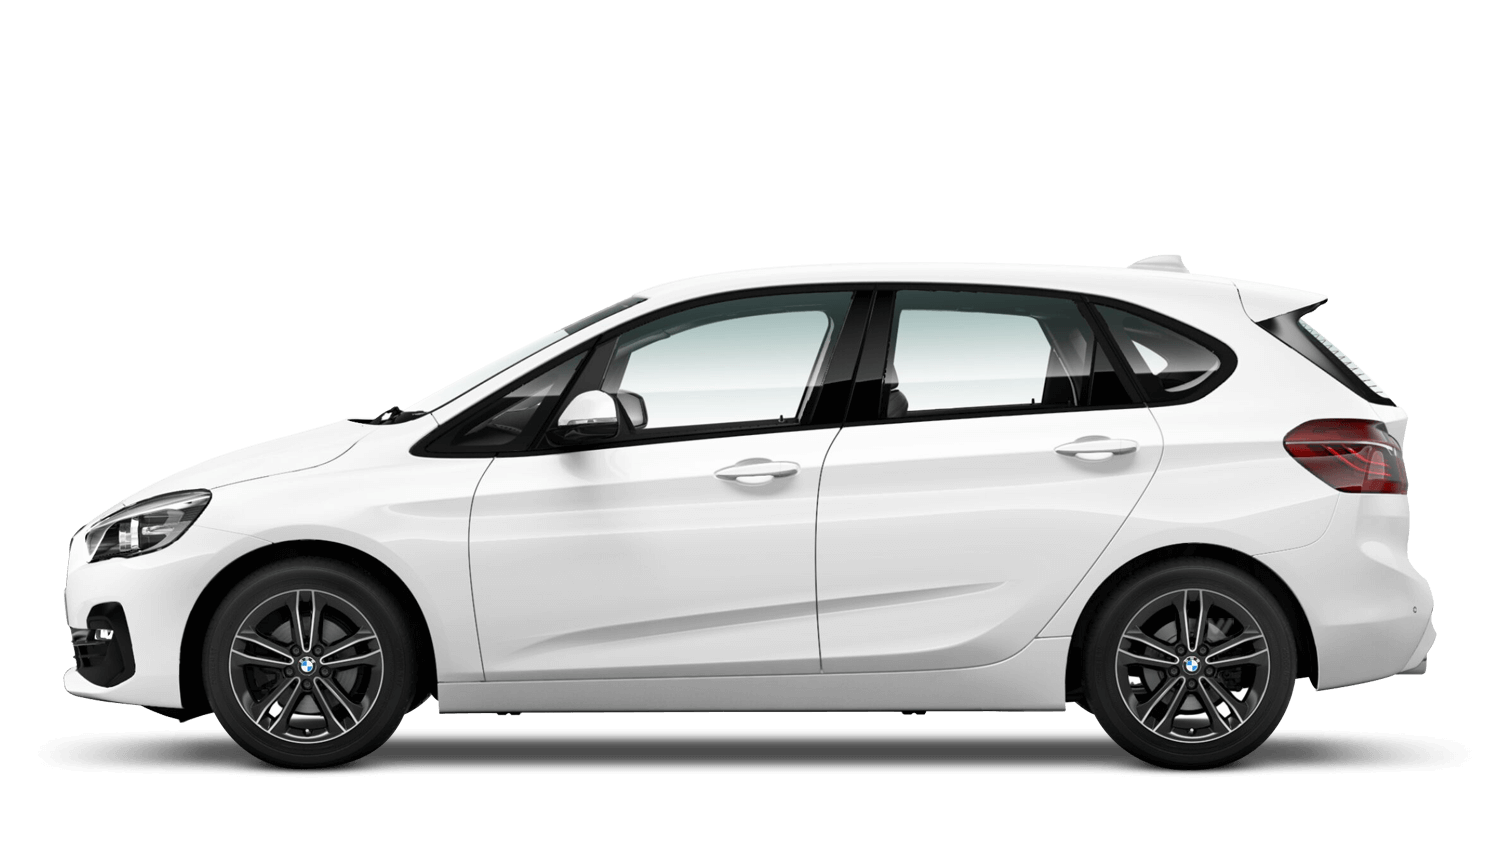 Alpine White (Solid) BMW 2 Series Active Tourer